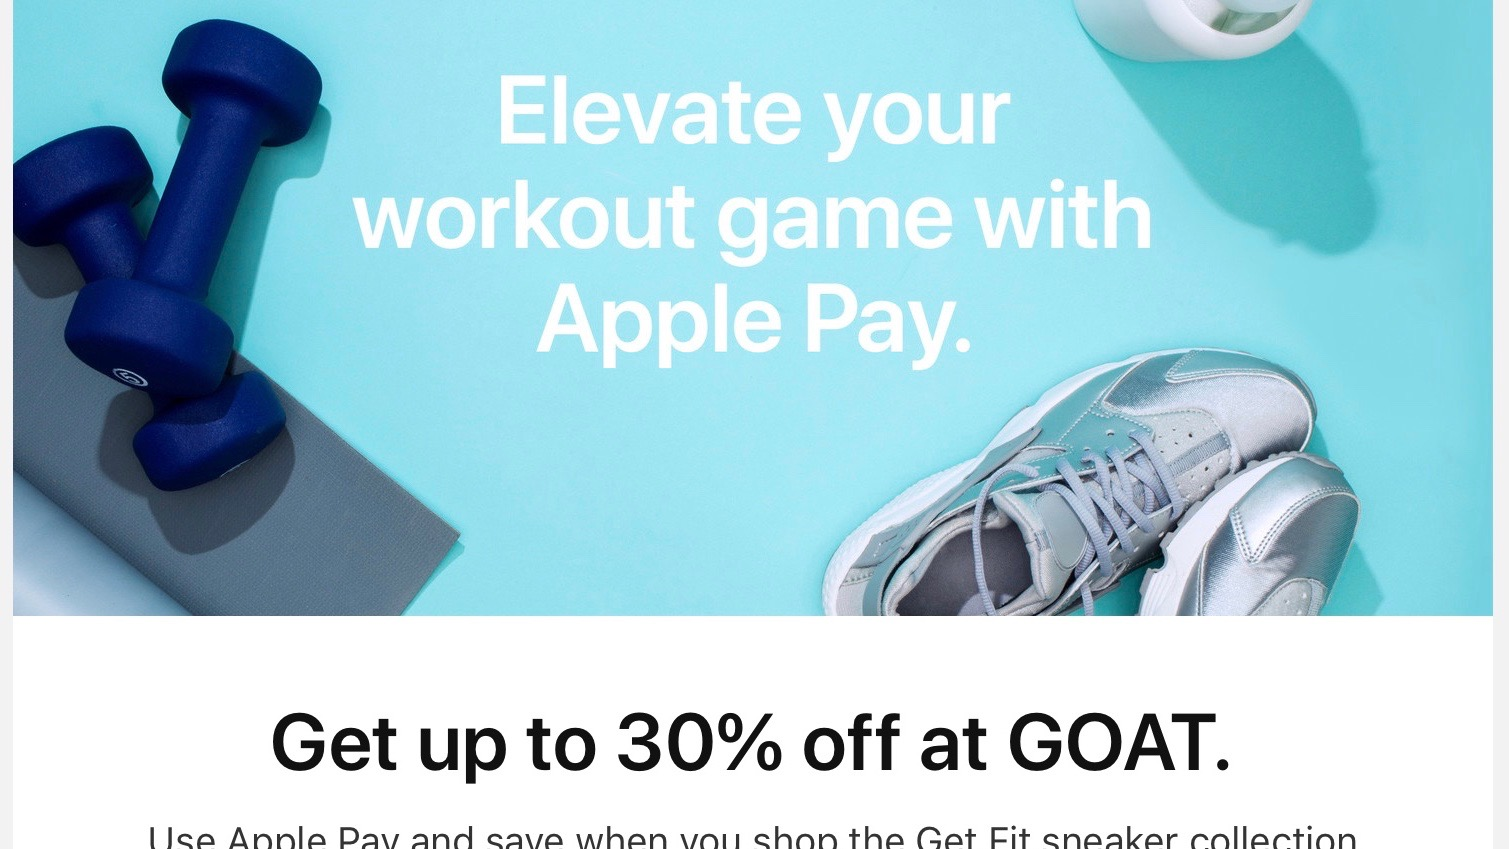 Apple Pay promotion brings up to 30% off sneakers through